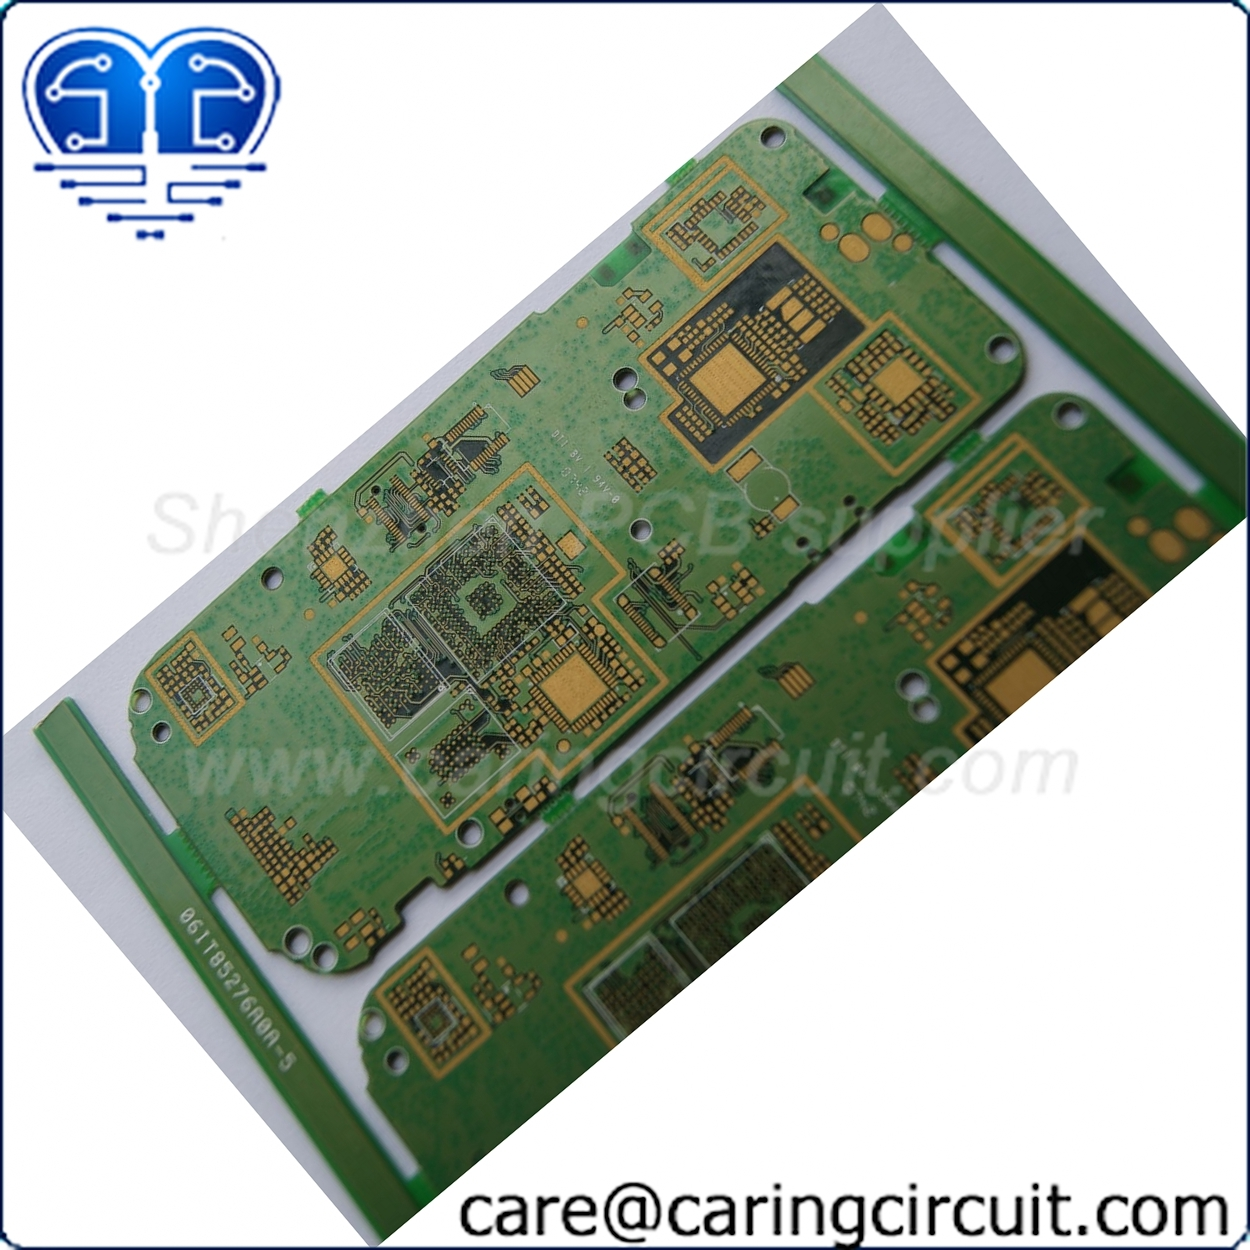 Black Core Fr4 Circuit Board Pcb Manufacturer Caring Quality Laser Cutting Machines For Printed Fpc Smart Phone Products Manufacturers